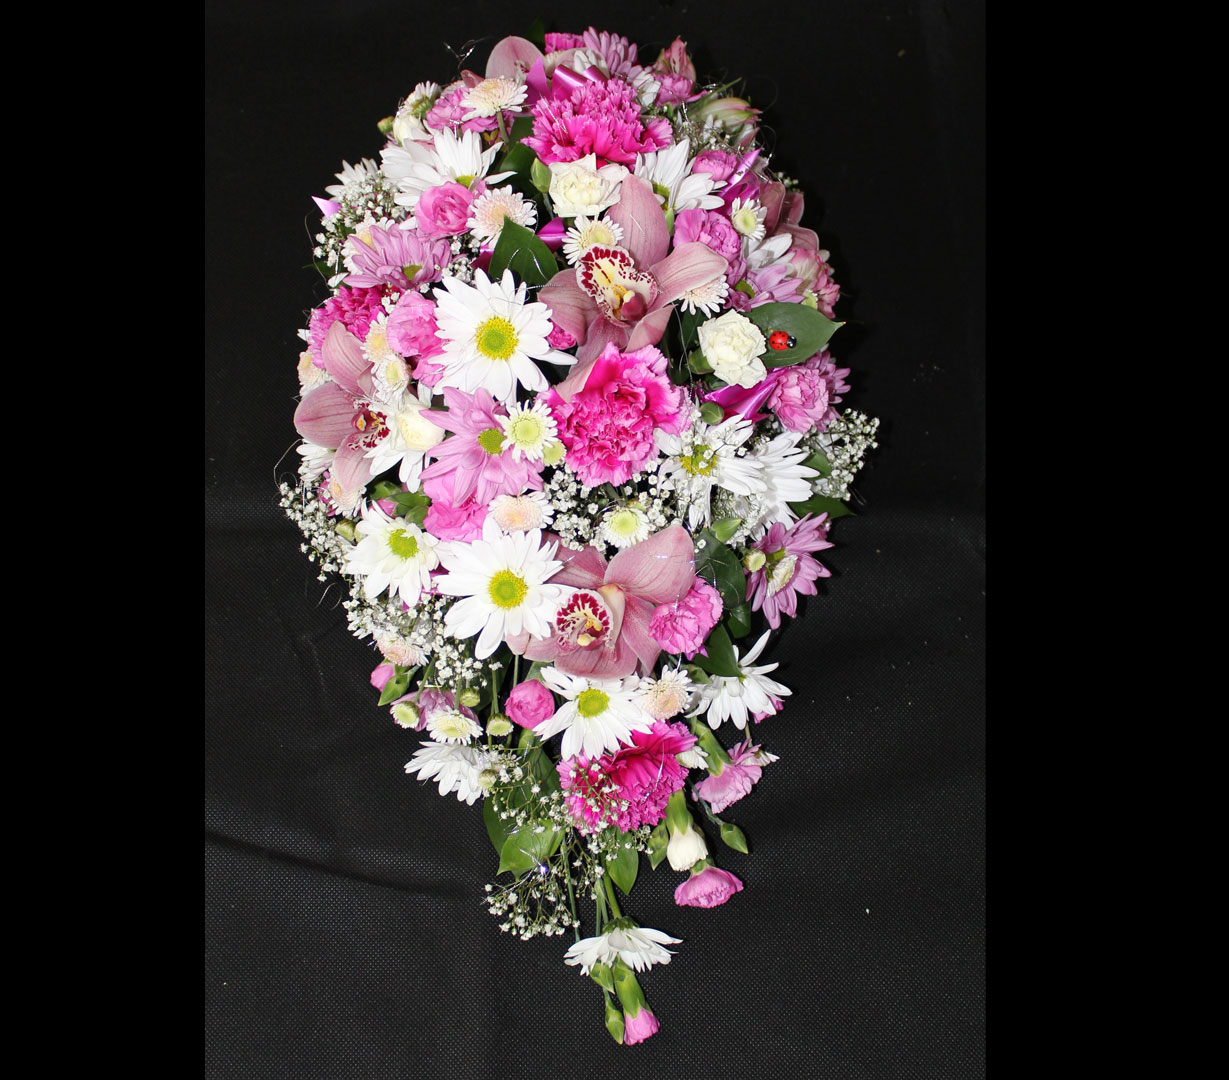 single ended Spray of Pink and White Flowers